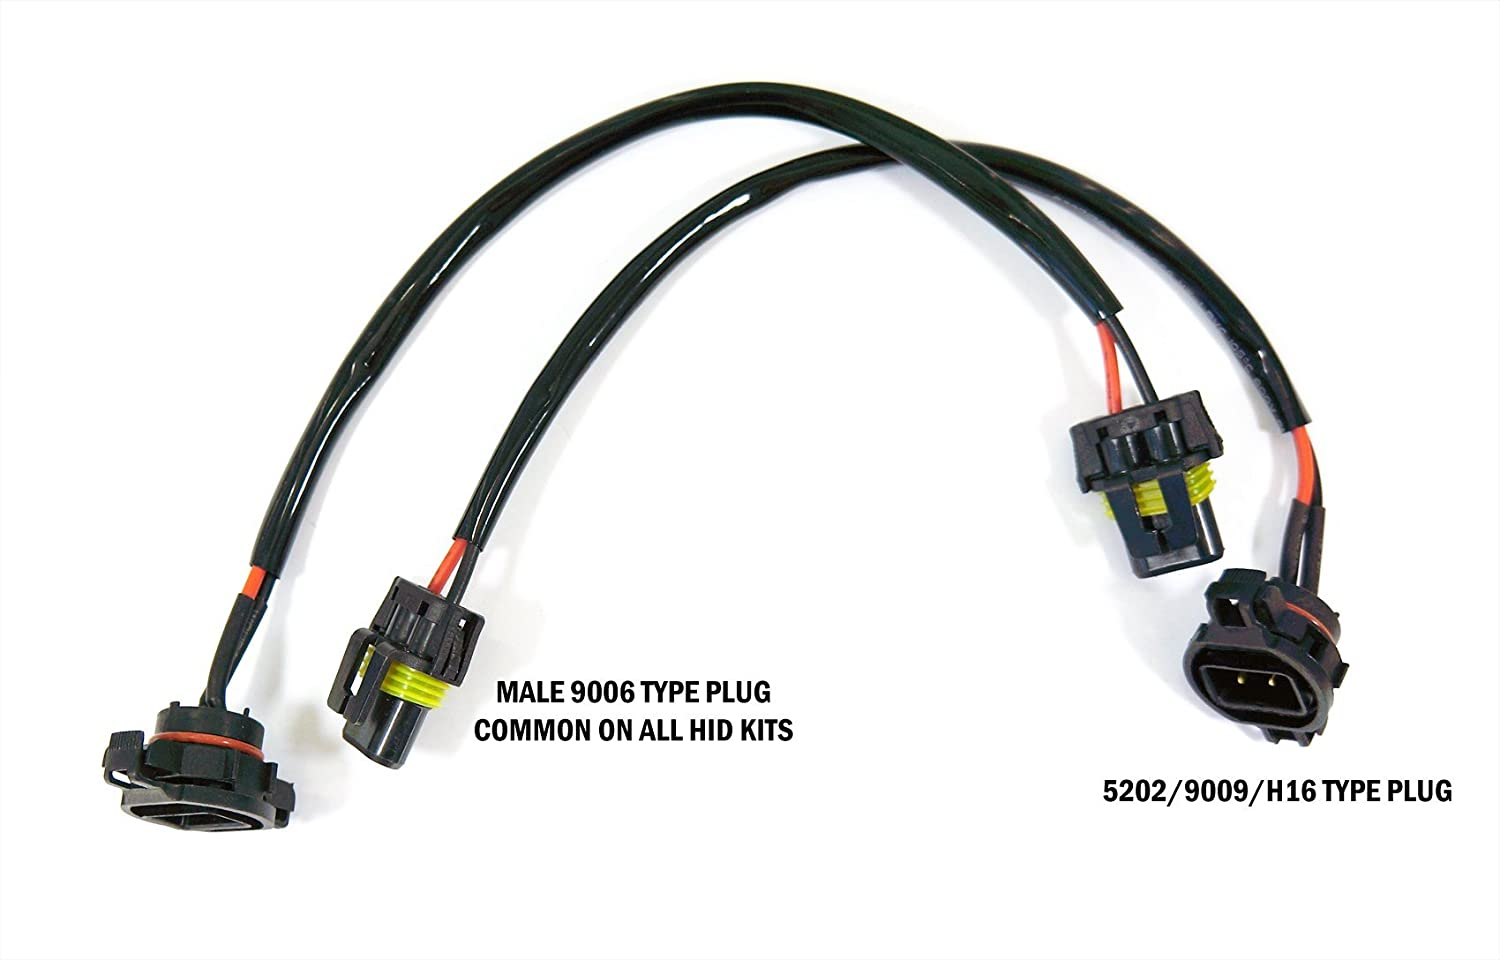 Genssi Ps24wff 5202 9009 2504 Input Power Plug Wire Harness Hid Wiring Ballast To Car Pack